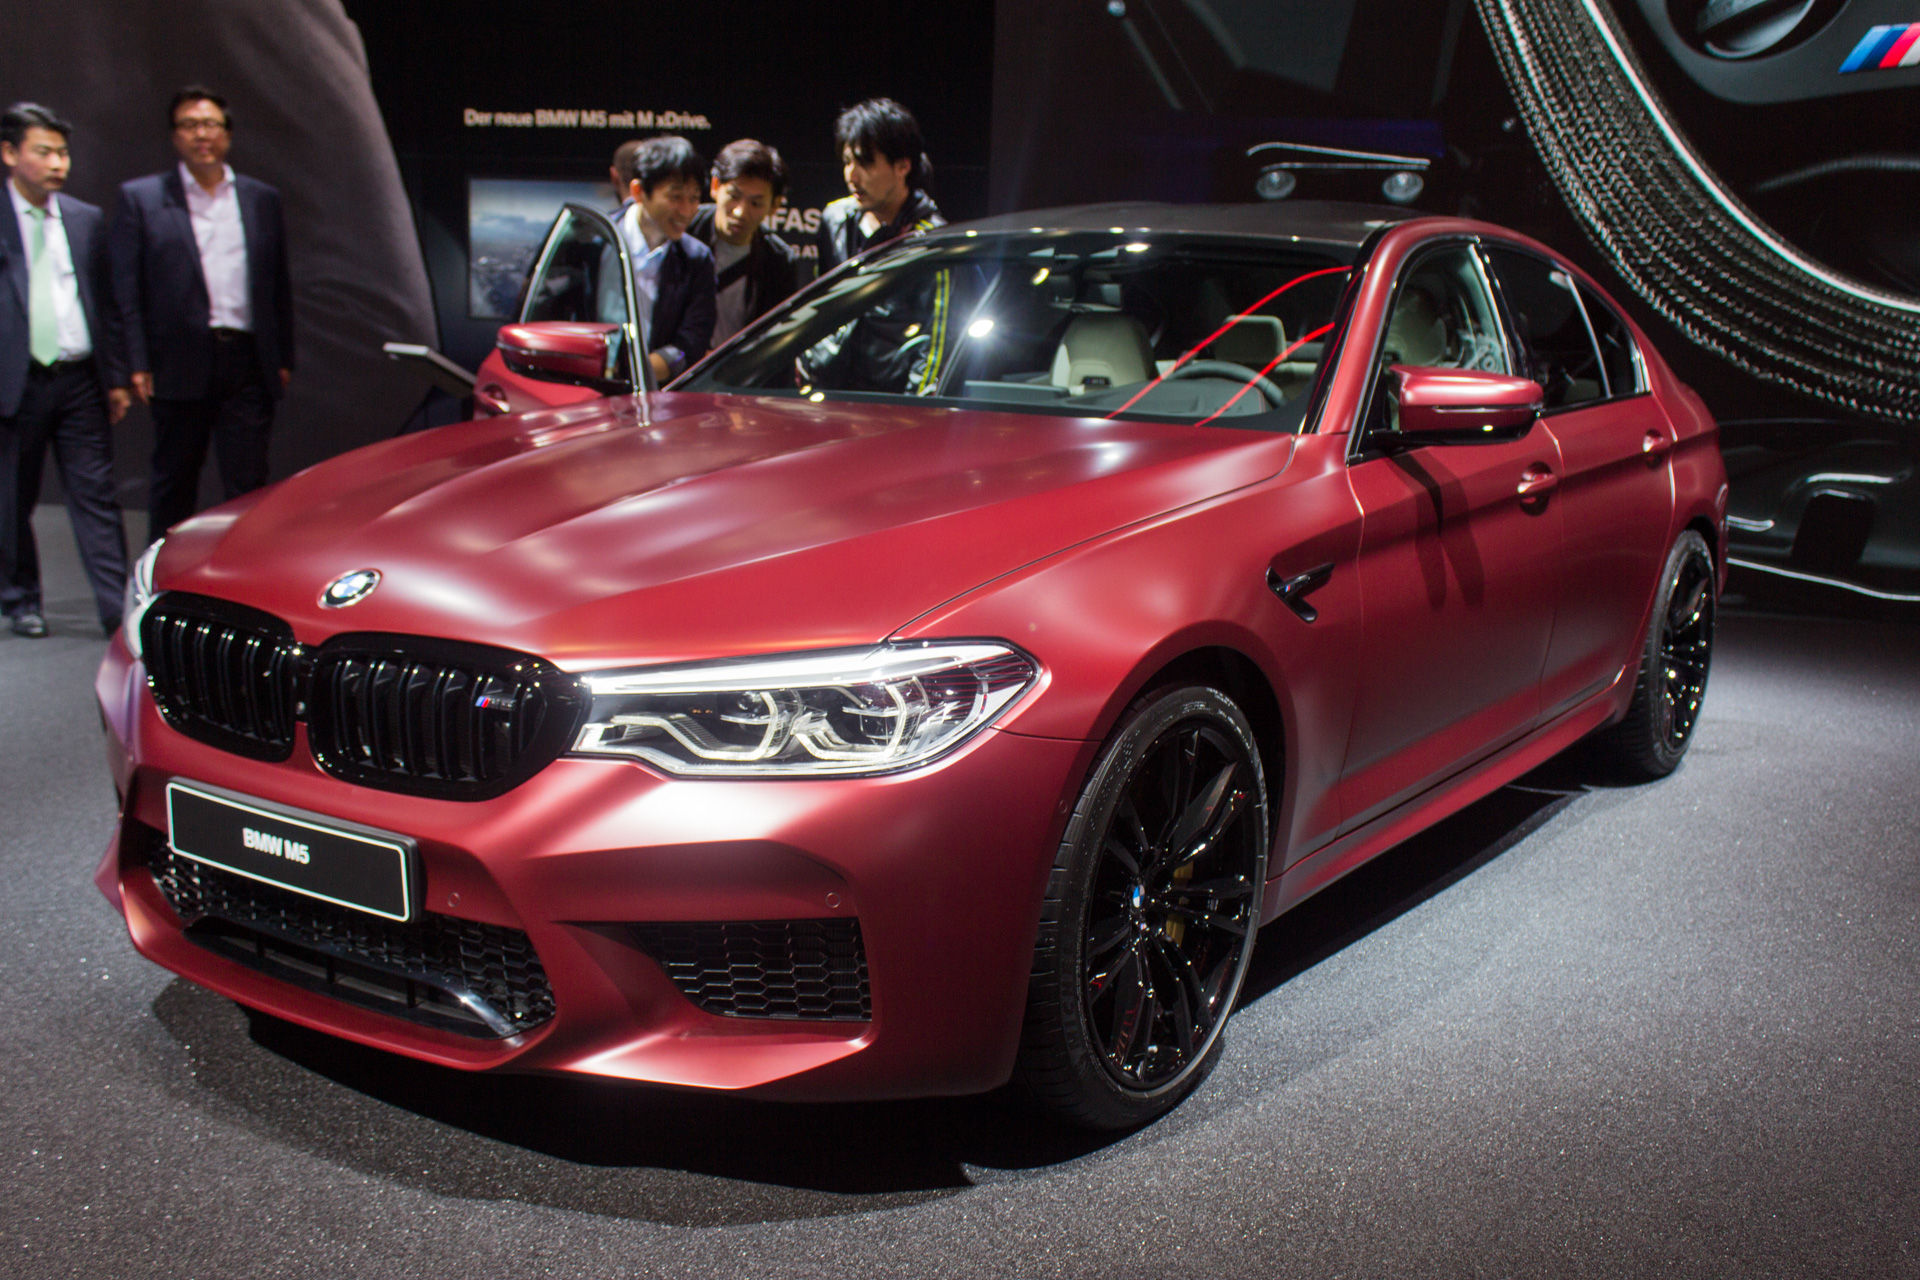 All of the wheels, all of the power; meet the new 2018 BMW M5